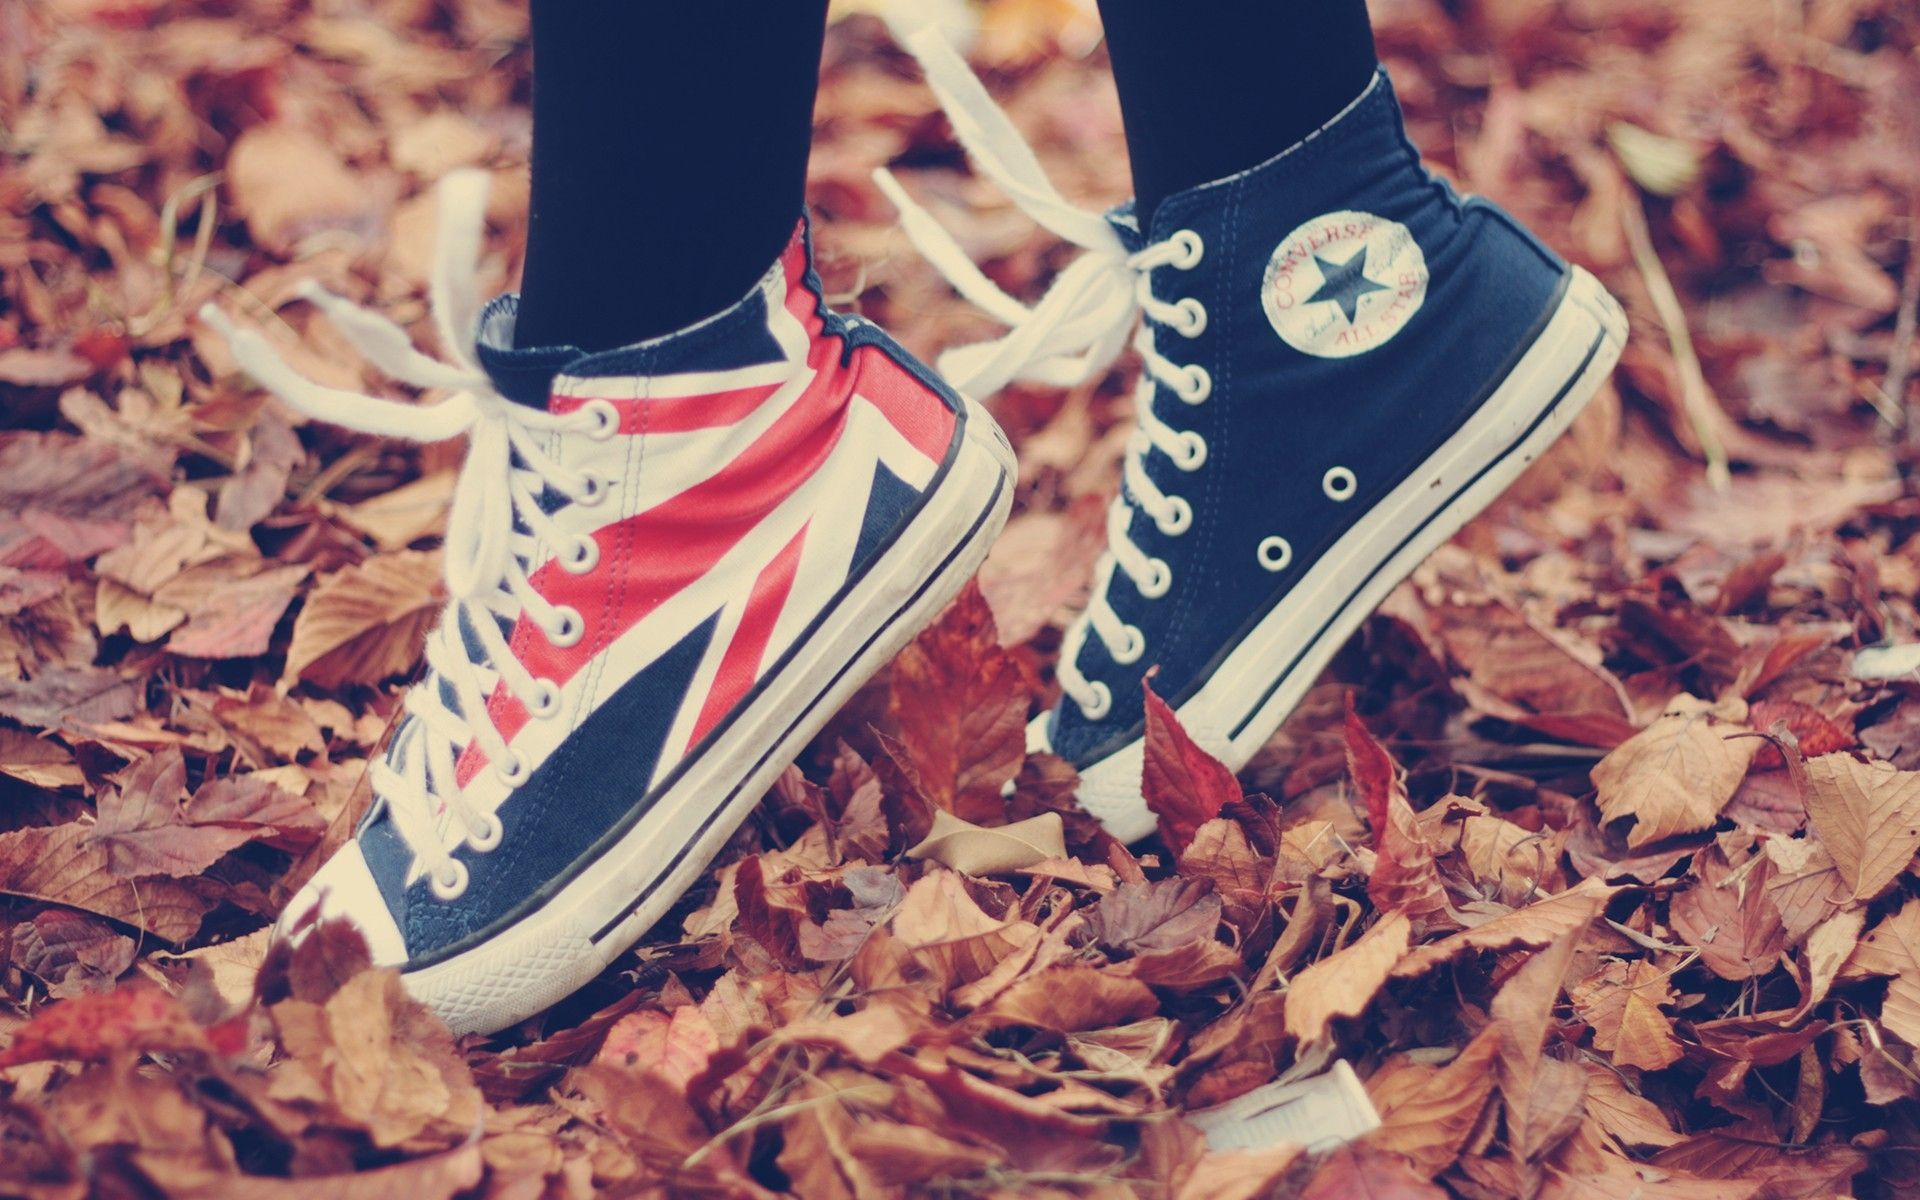 Shoes Sneakers Converse Style Fall Sports 1920x1200 Wallpaper